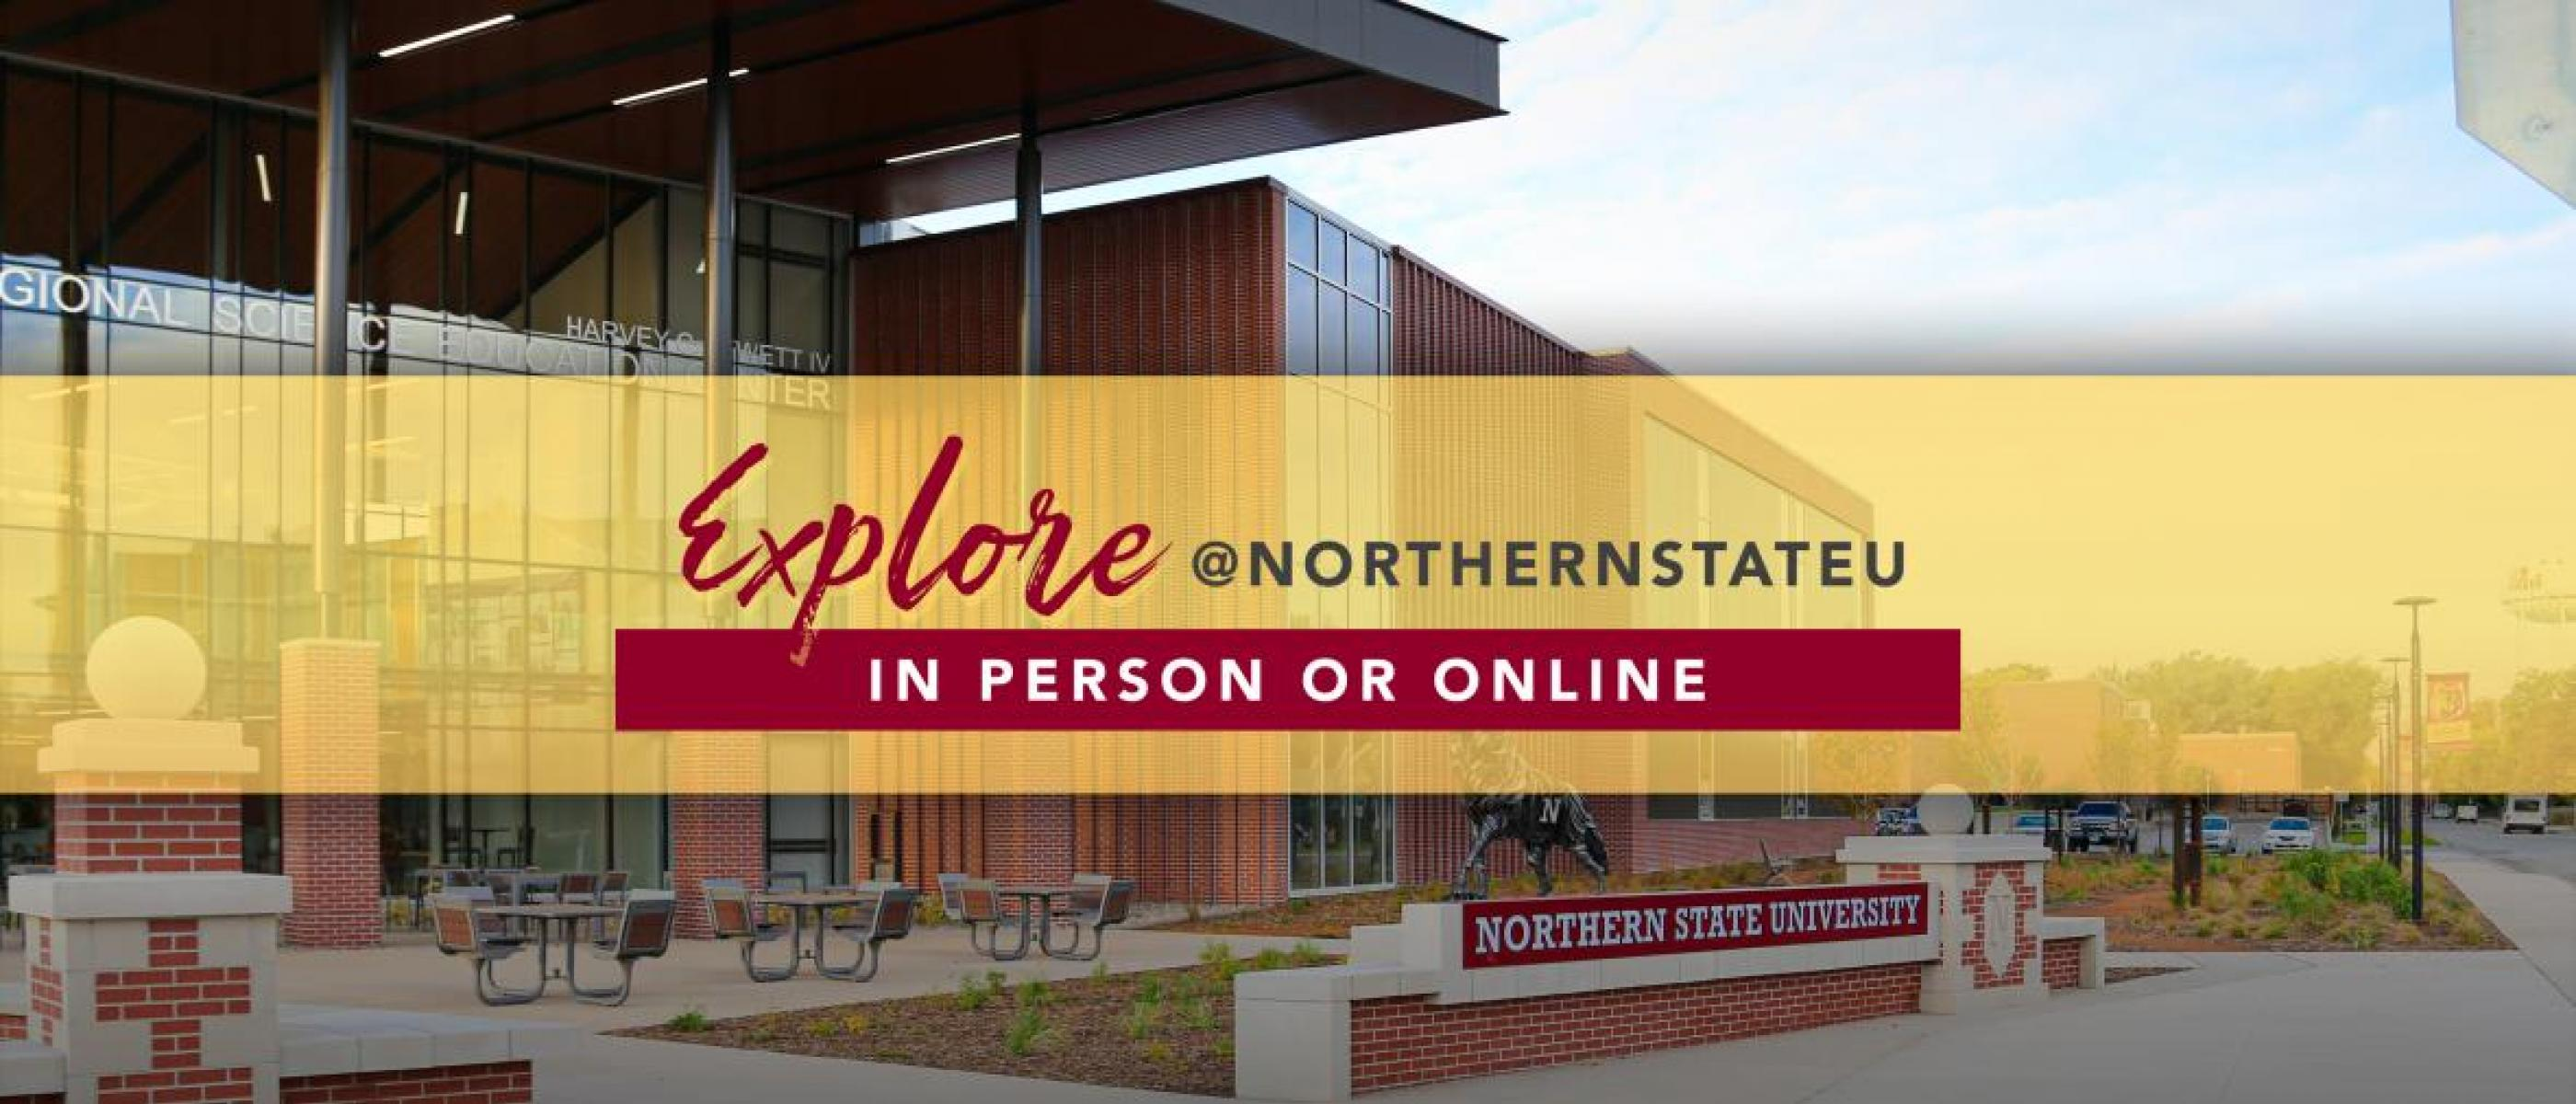 Explore @northernstateu in person or online